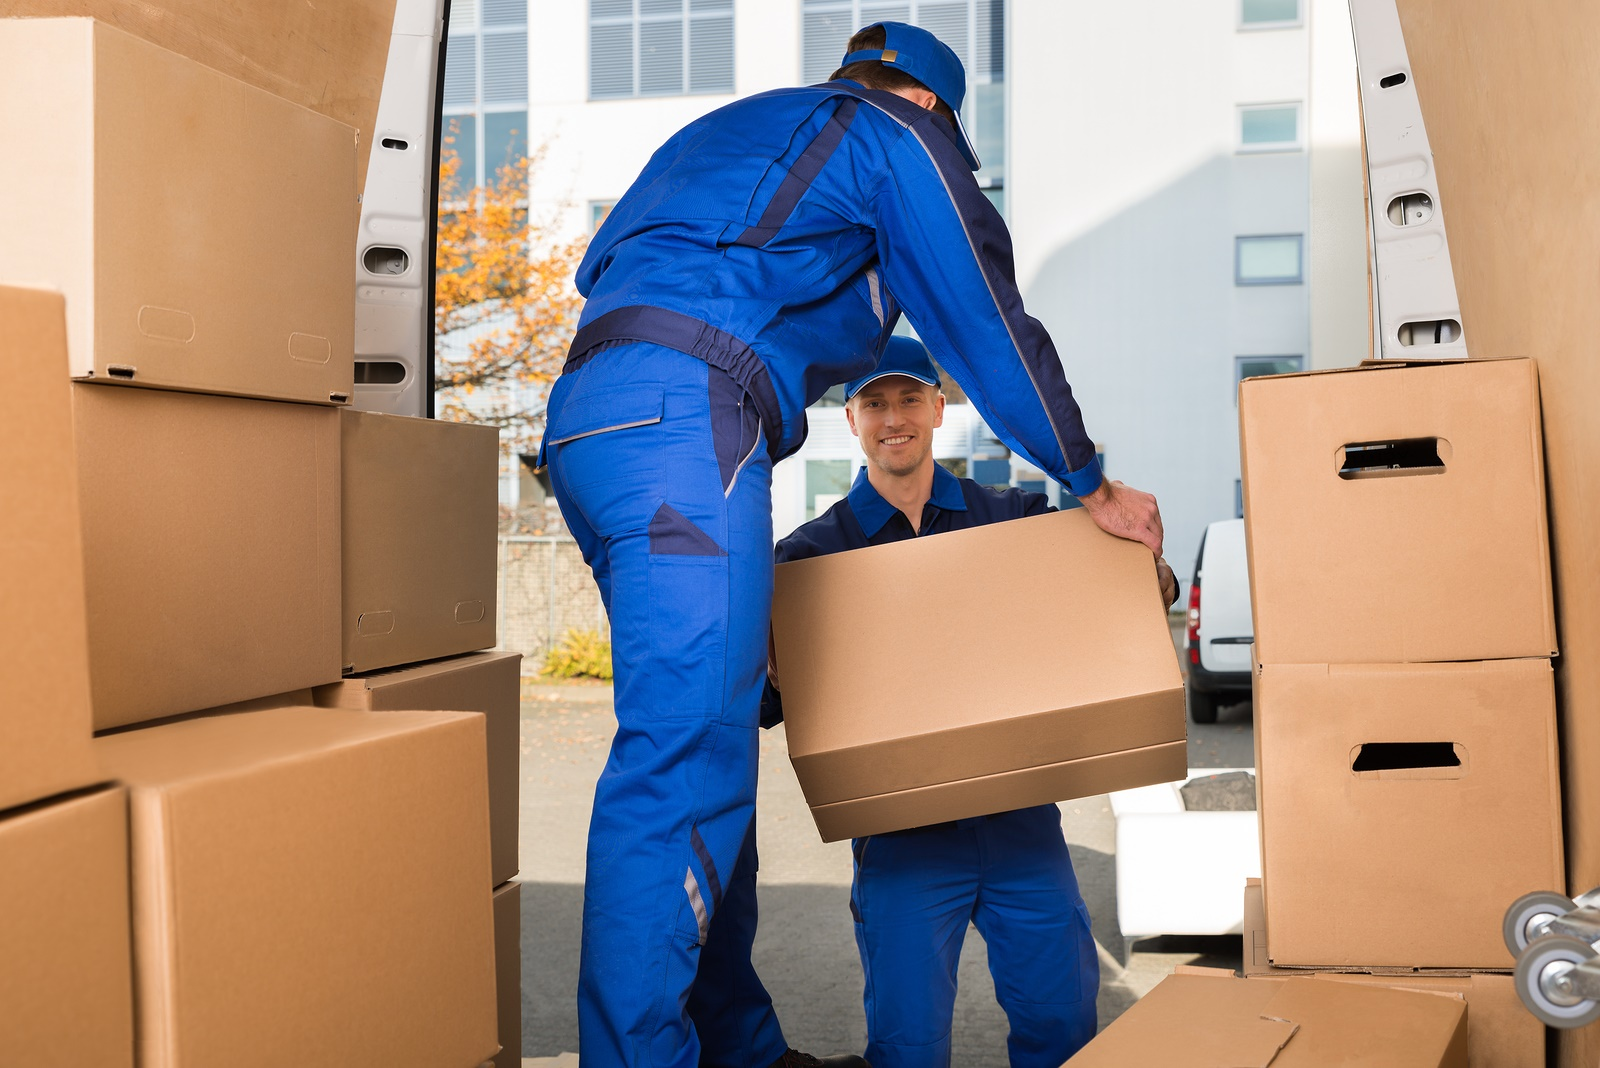 The Best Packers And Movers In Whitefield For All Your Relocation Needs